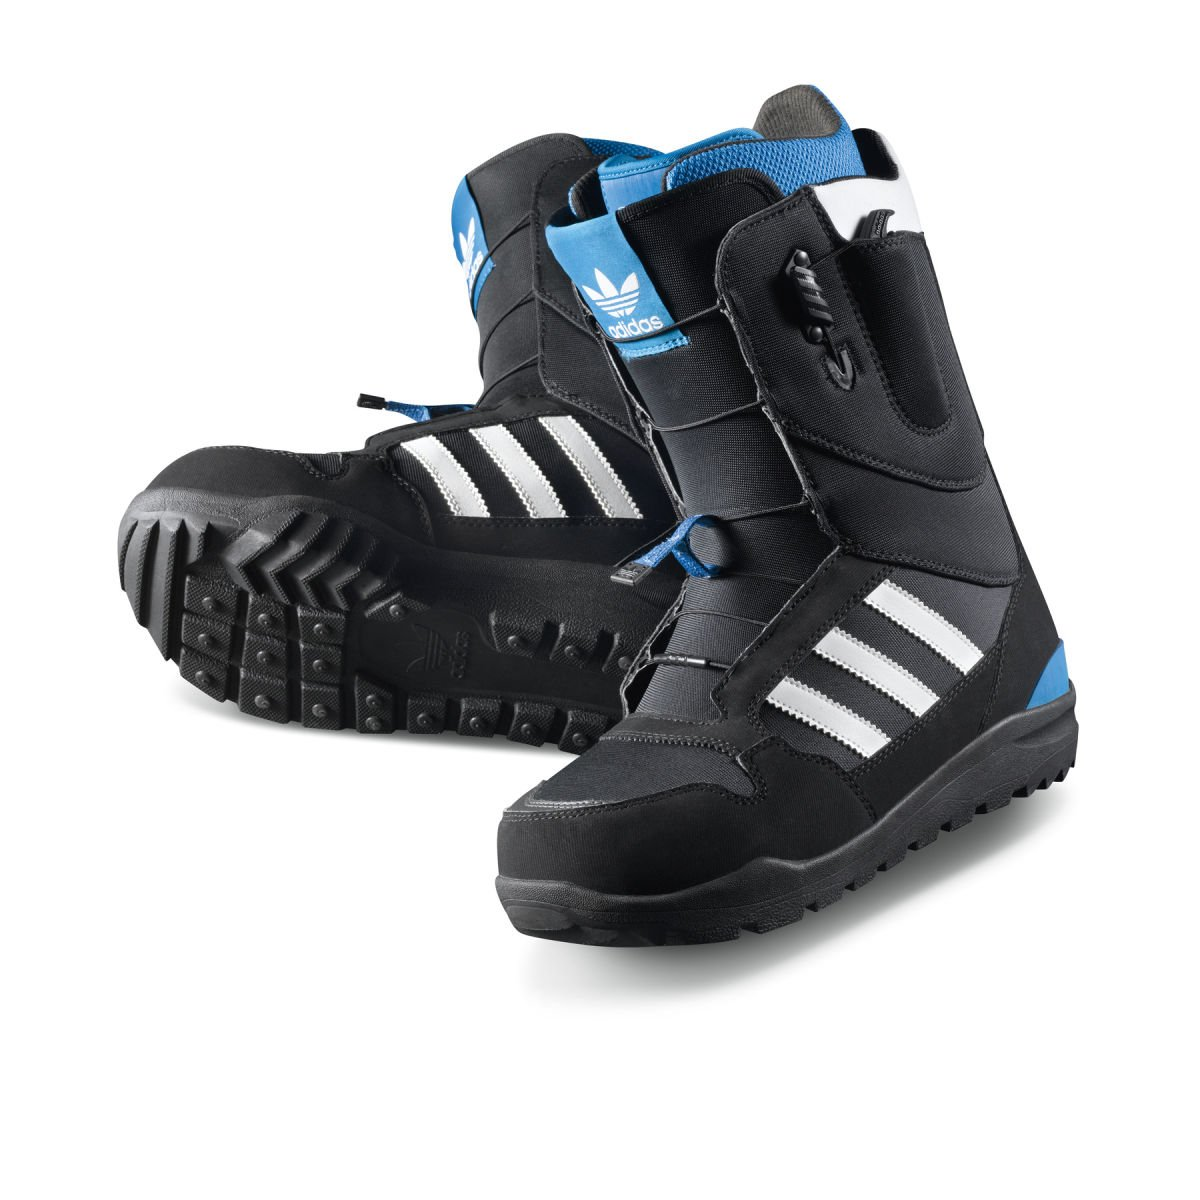 7ce758844 ... cheap adidas snowboard boot men snowboarding zx 500 2015 amazon sports  outdoors 491aa 93468 ...